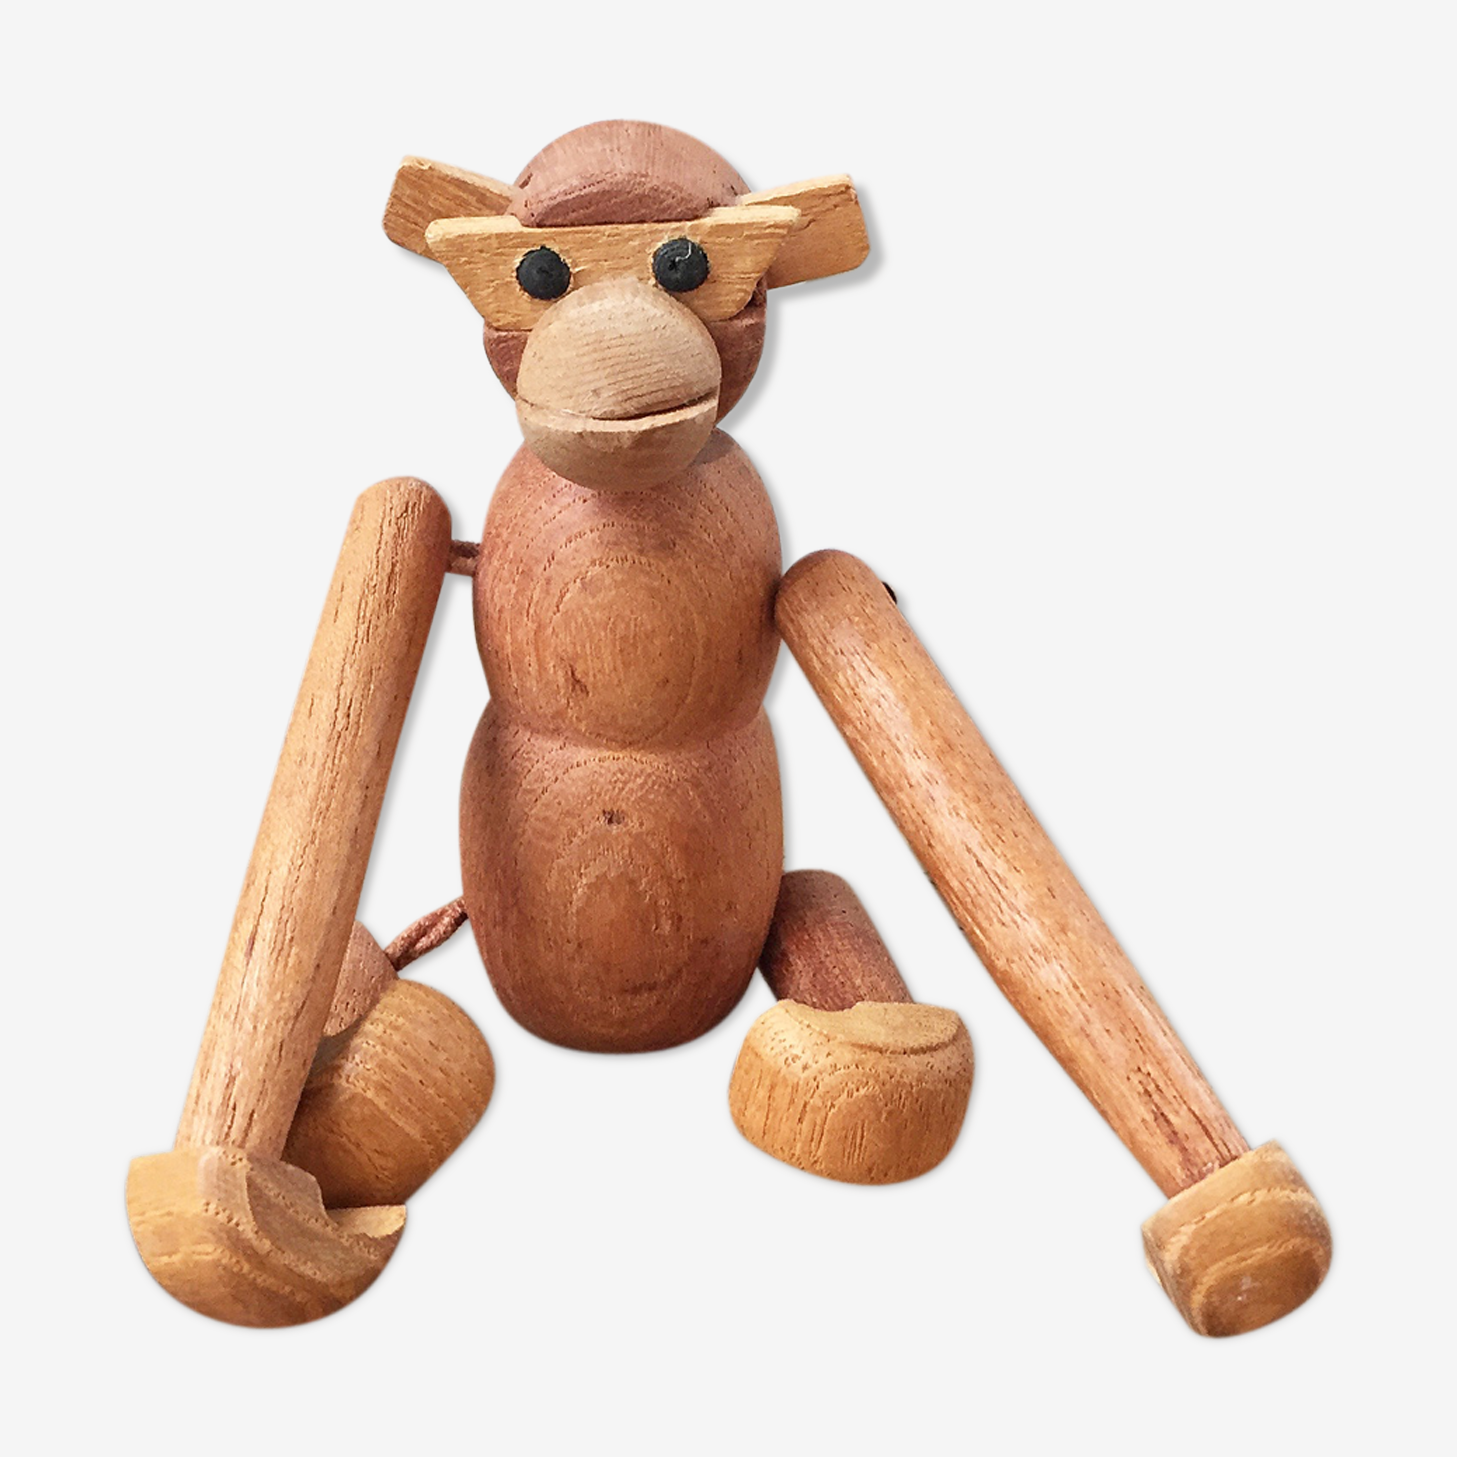 Monkey Zoo Line wood vintage